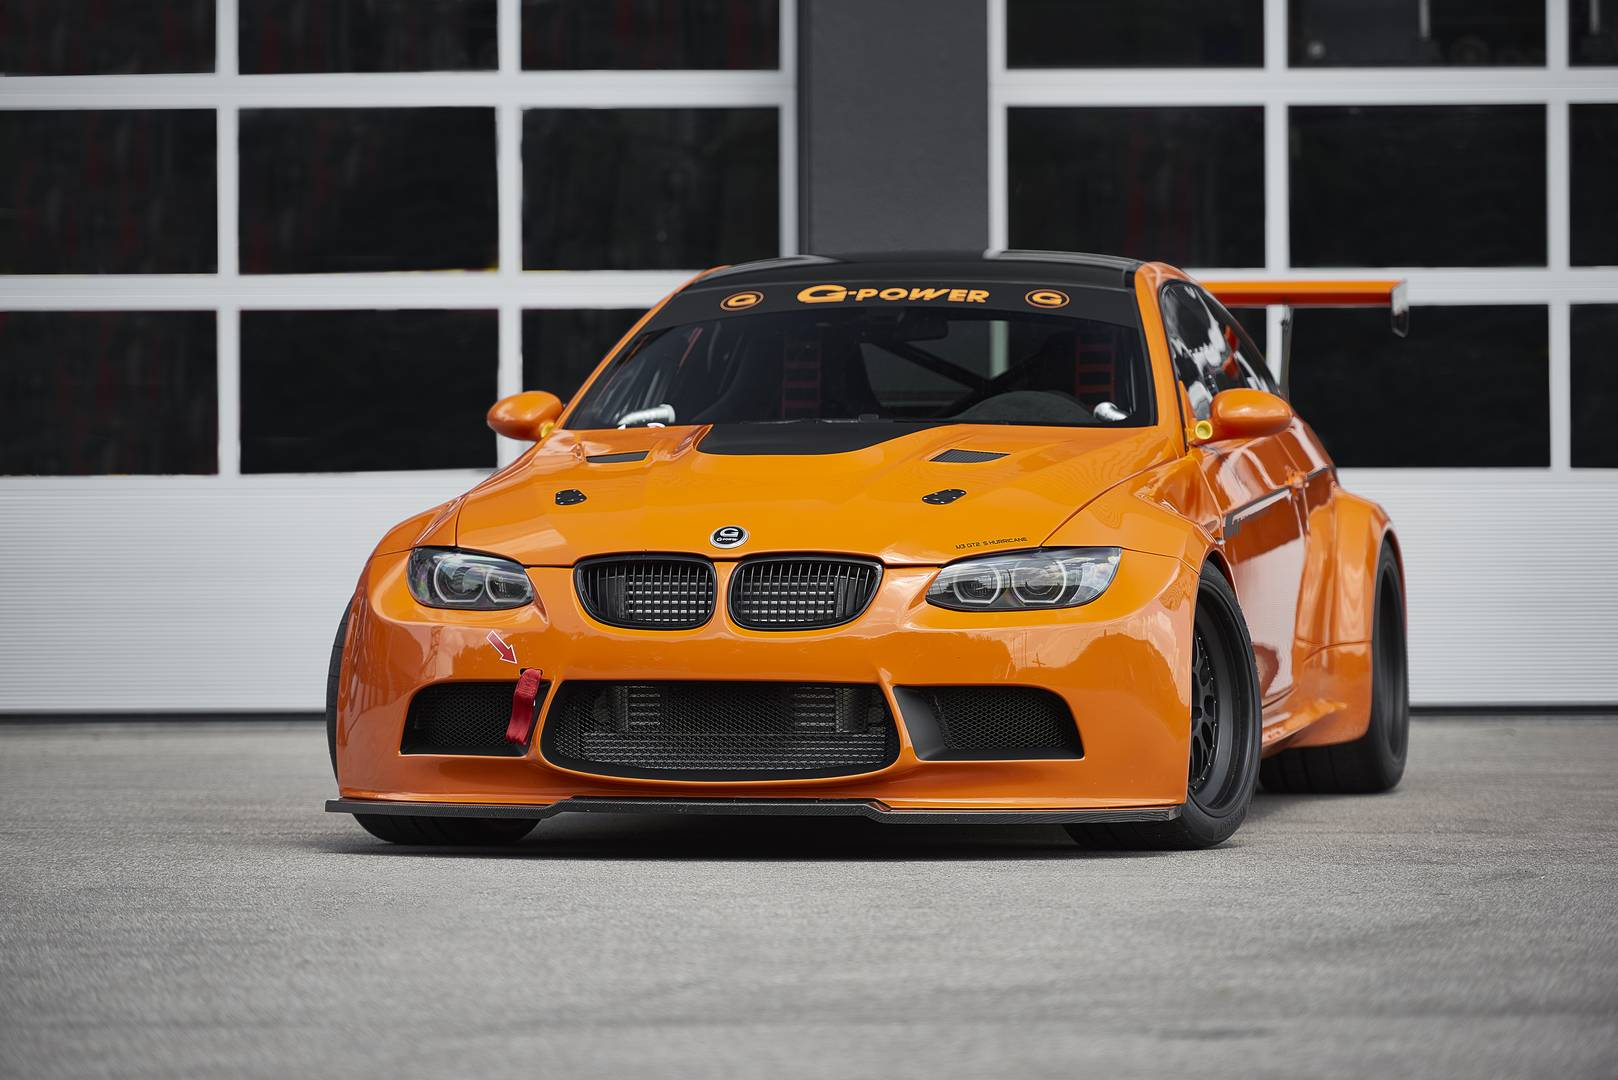 official 720hp g power bmw m3 gt2 s hurricane gtspirit. Black Bedroom Furniture Sets. Home Design Ideas